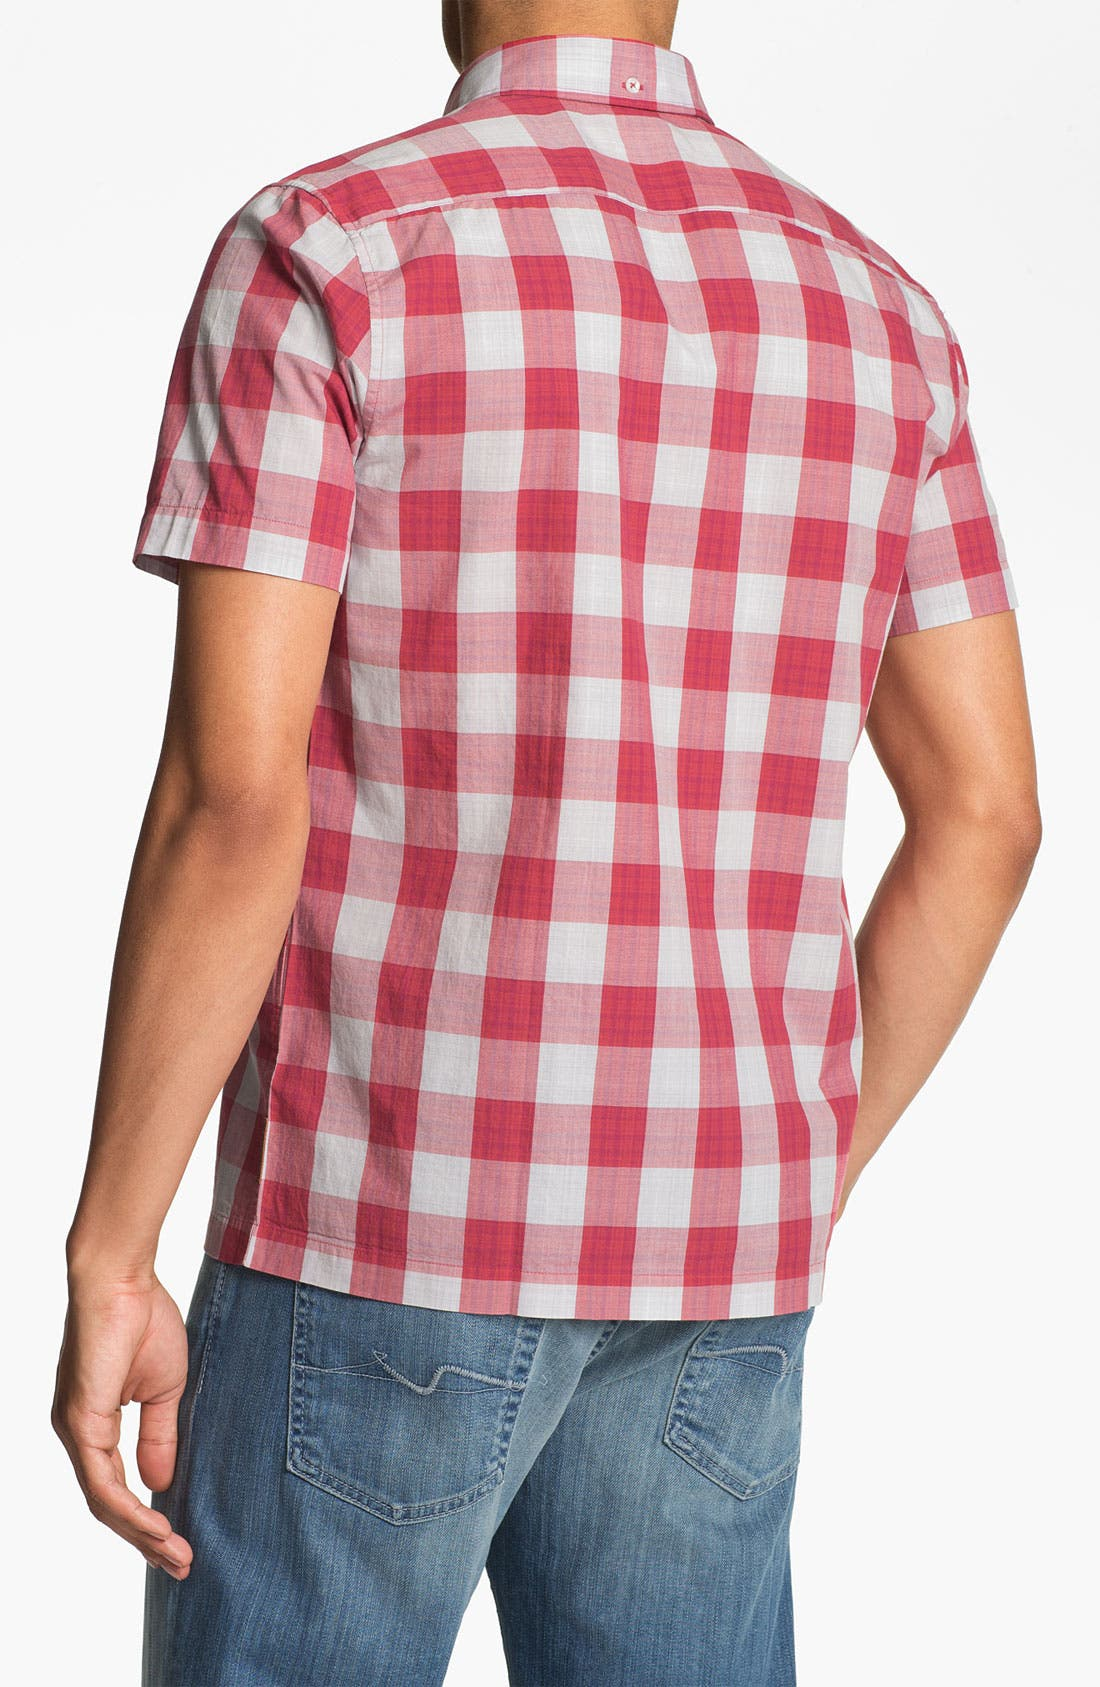 Alternate Image 2  - Ben Sherman Gingham Check Short Sleeve Woven Shirt